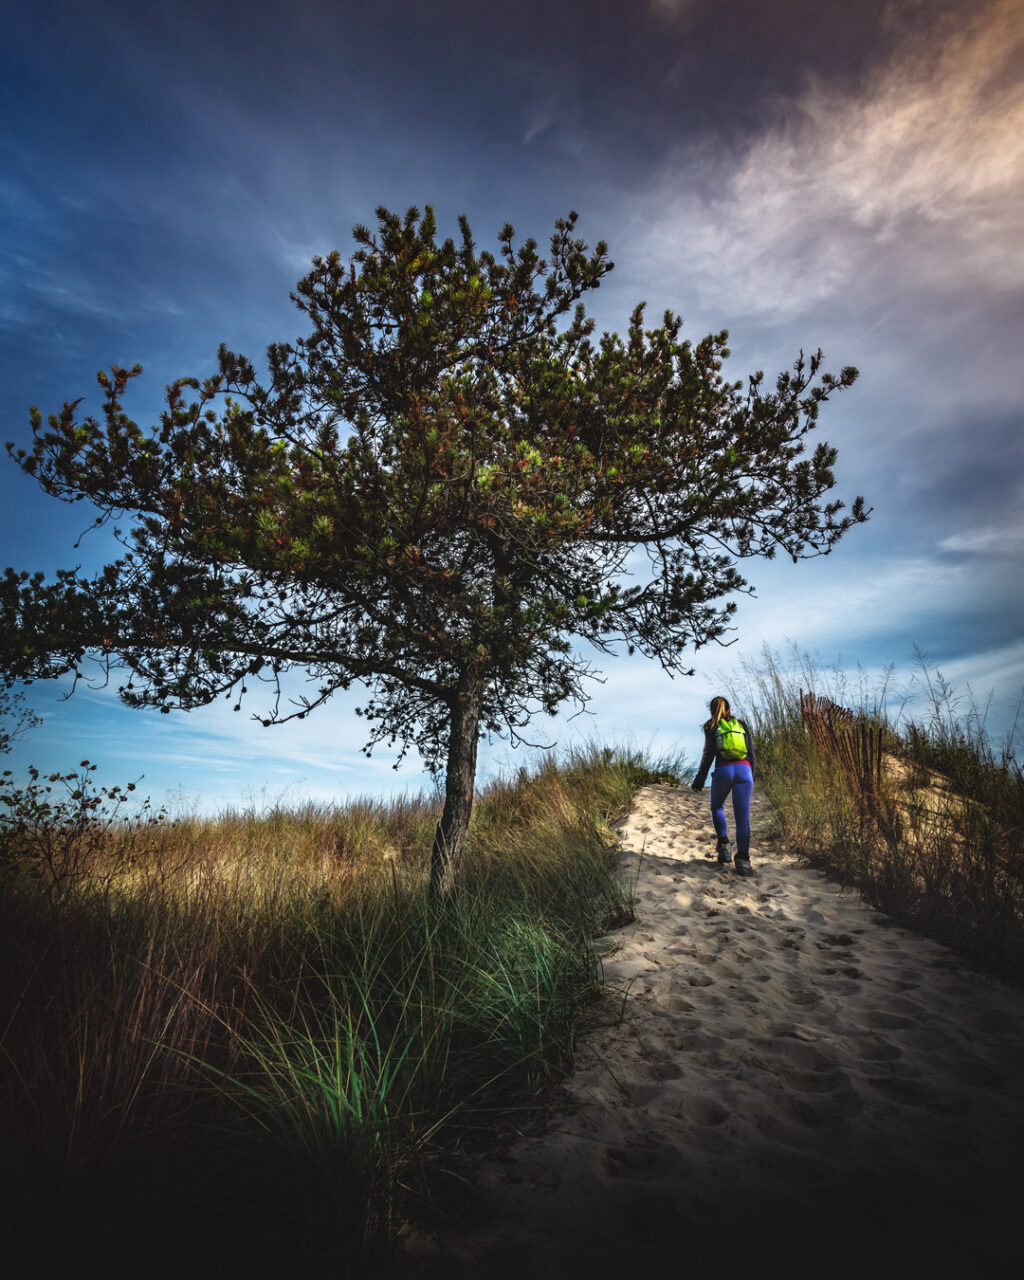 Woman hiking on sandy trail past wispy grasses and a gnarled conifer tree.